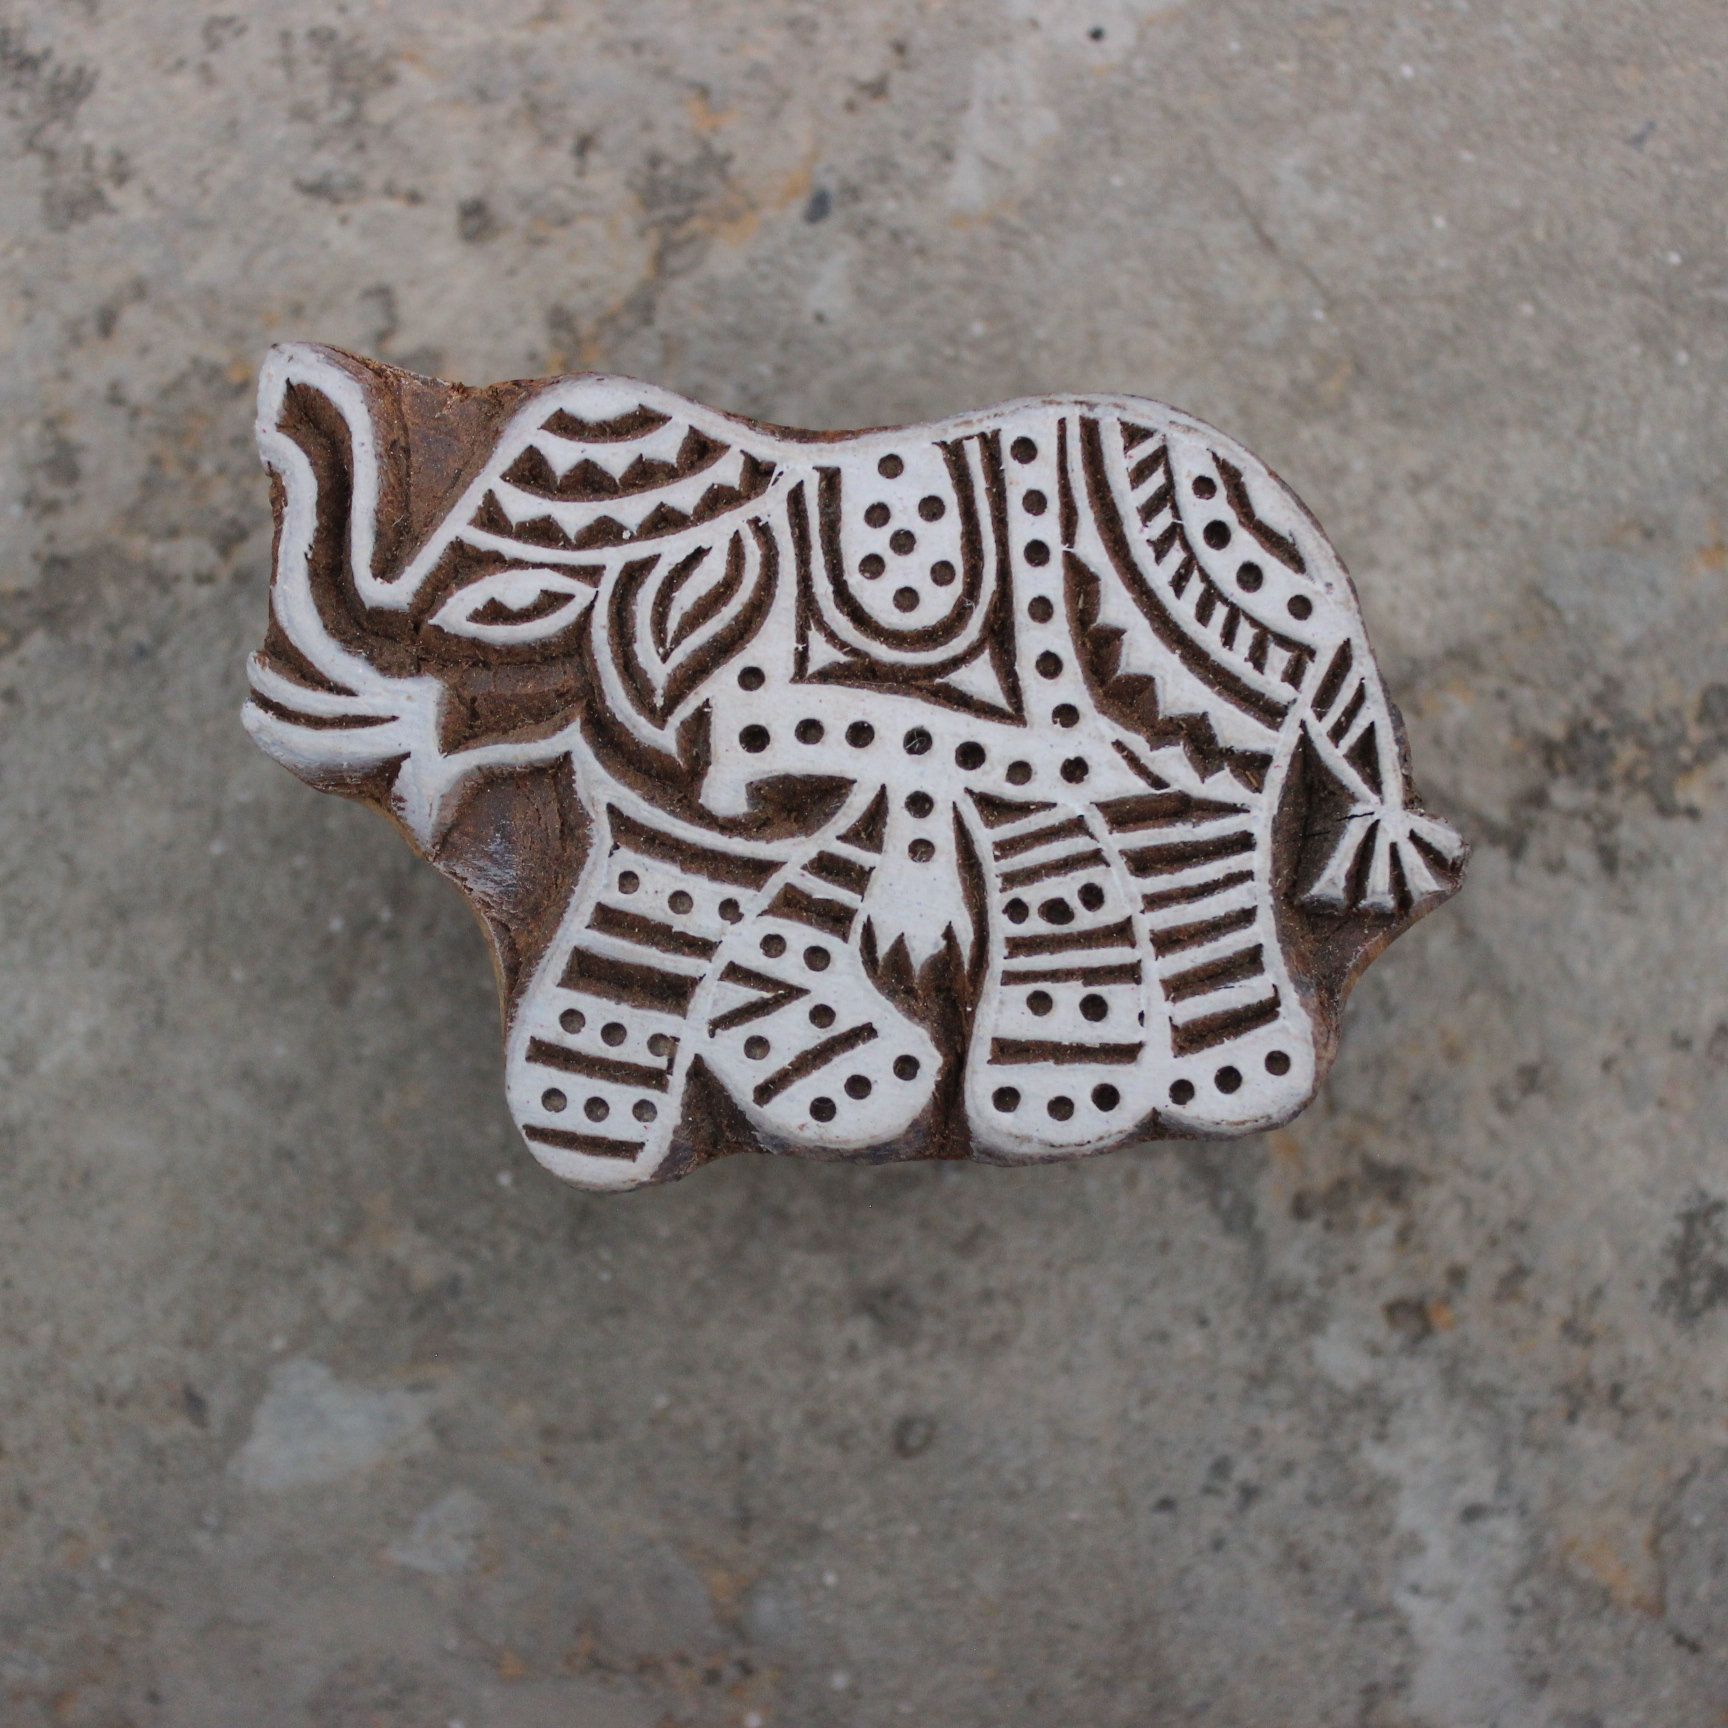 Elephant Fabric Stamp Carve Block Block Print Stamp Animal Block Print Stamp Indian Wooden Stamp For Printing Kids Craft Soap Stamp Wedding #fabricstamping